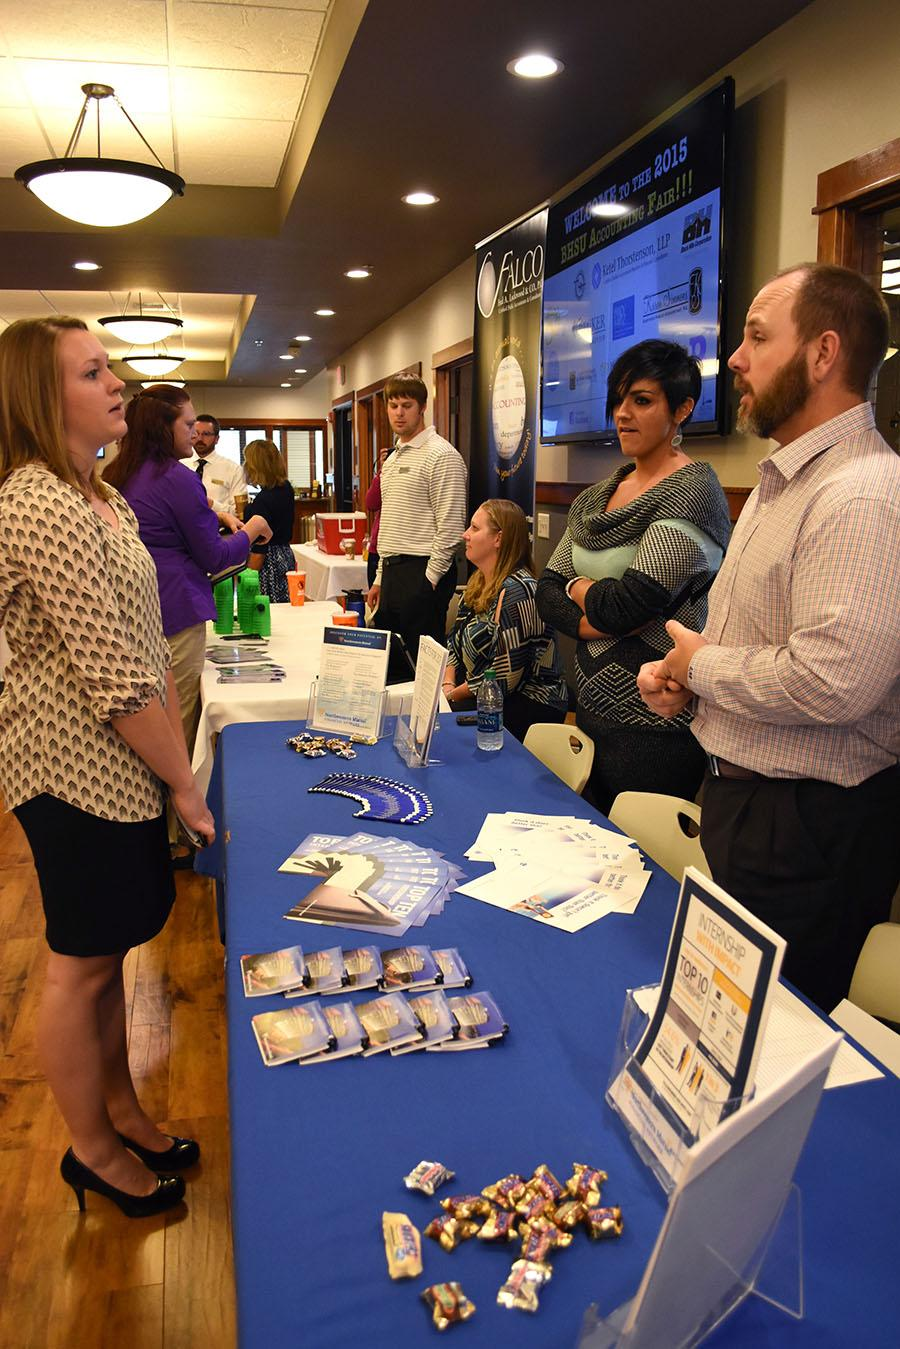 Local business representatives talk to accounting students at the BHSU Accounting Career Fair Sept. 29